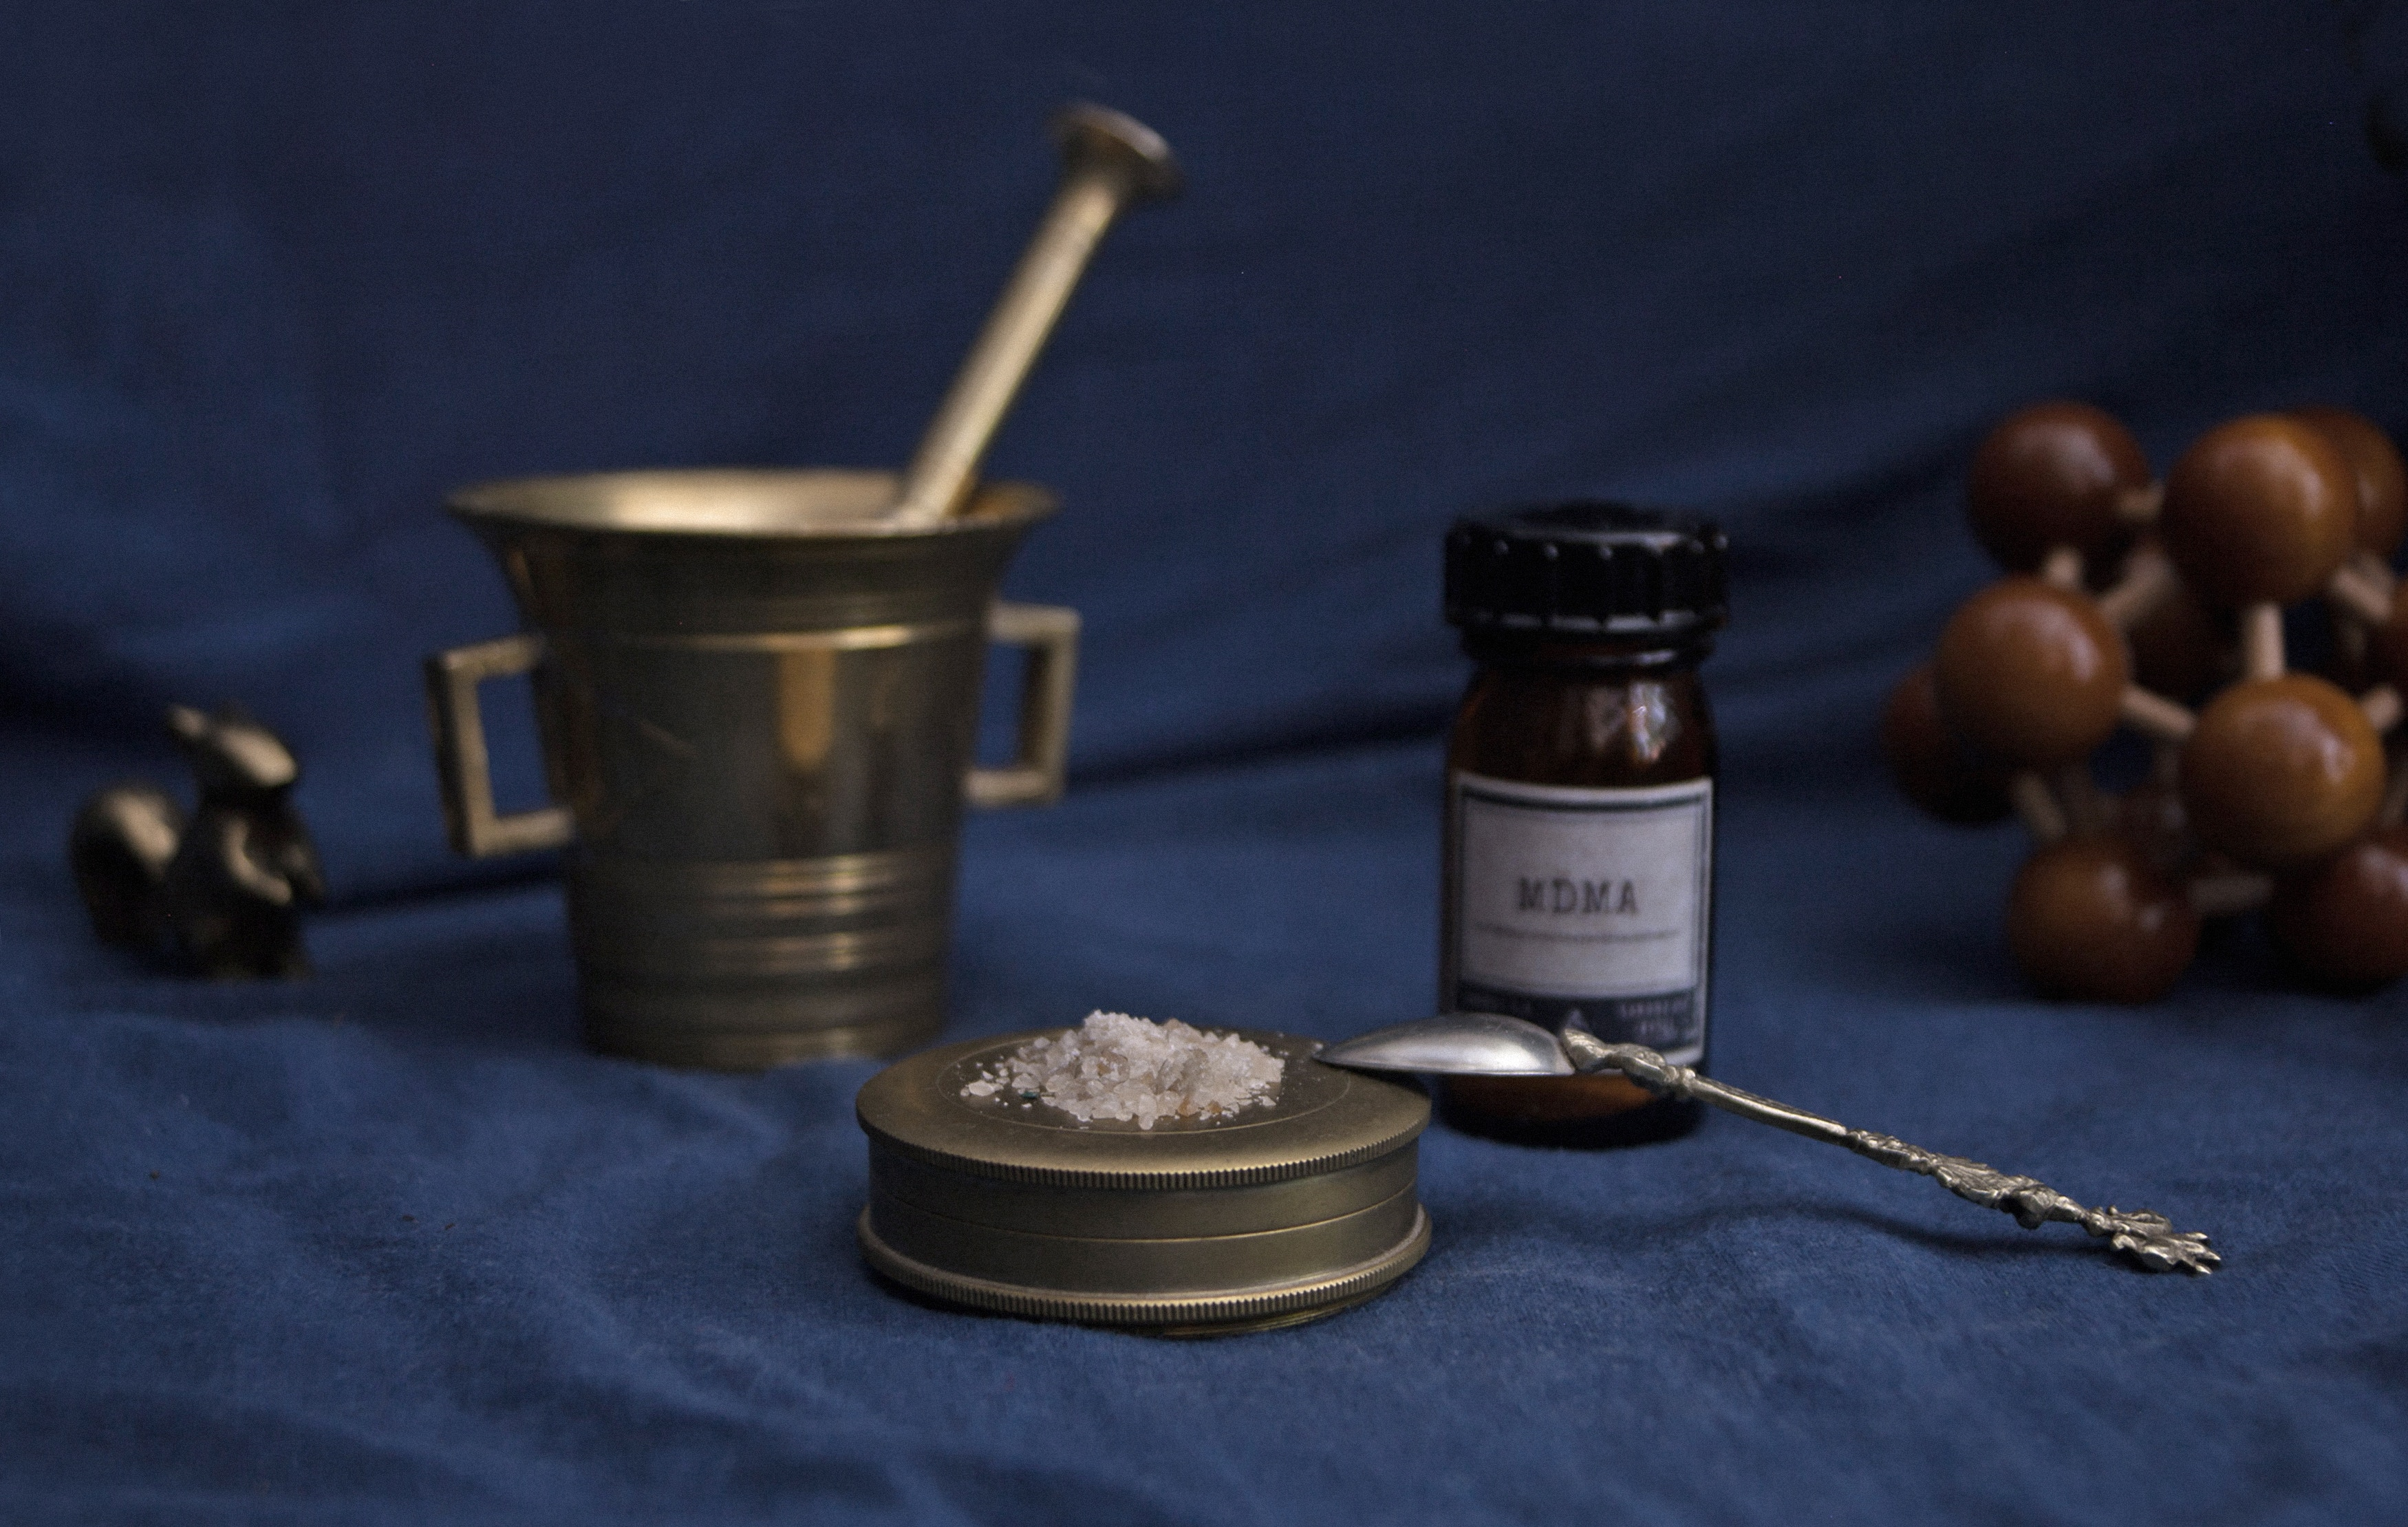 history of drugs in the US - Mortar, pestle and powdered MDMA